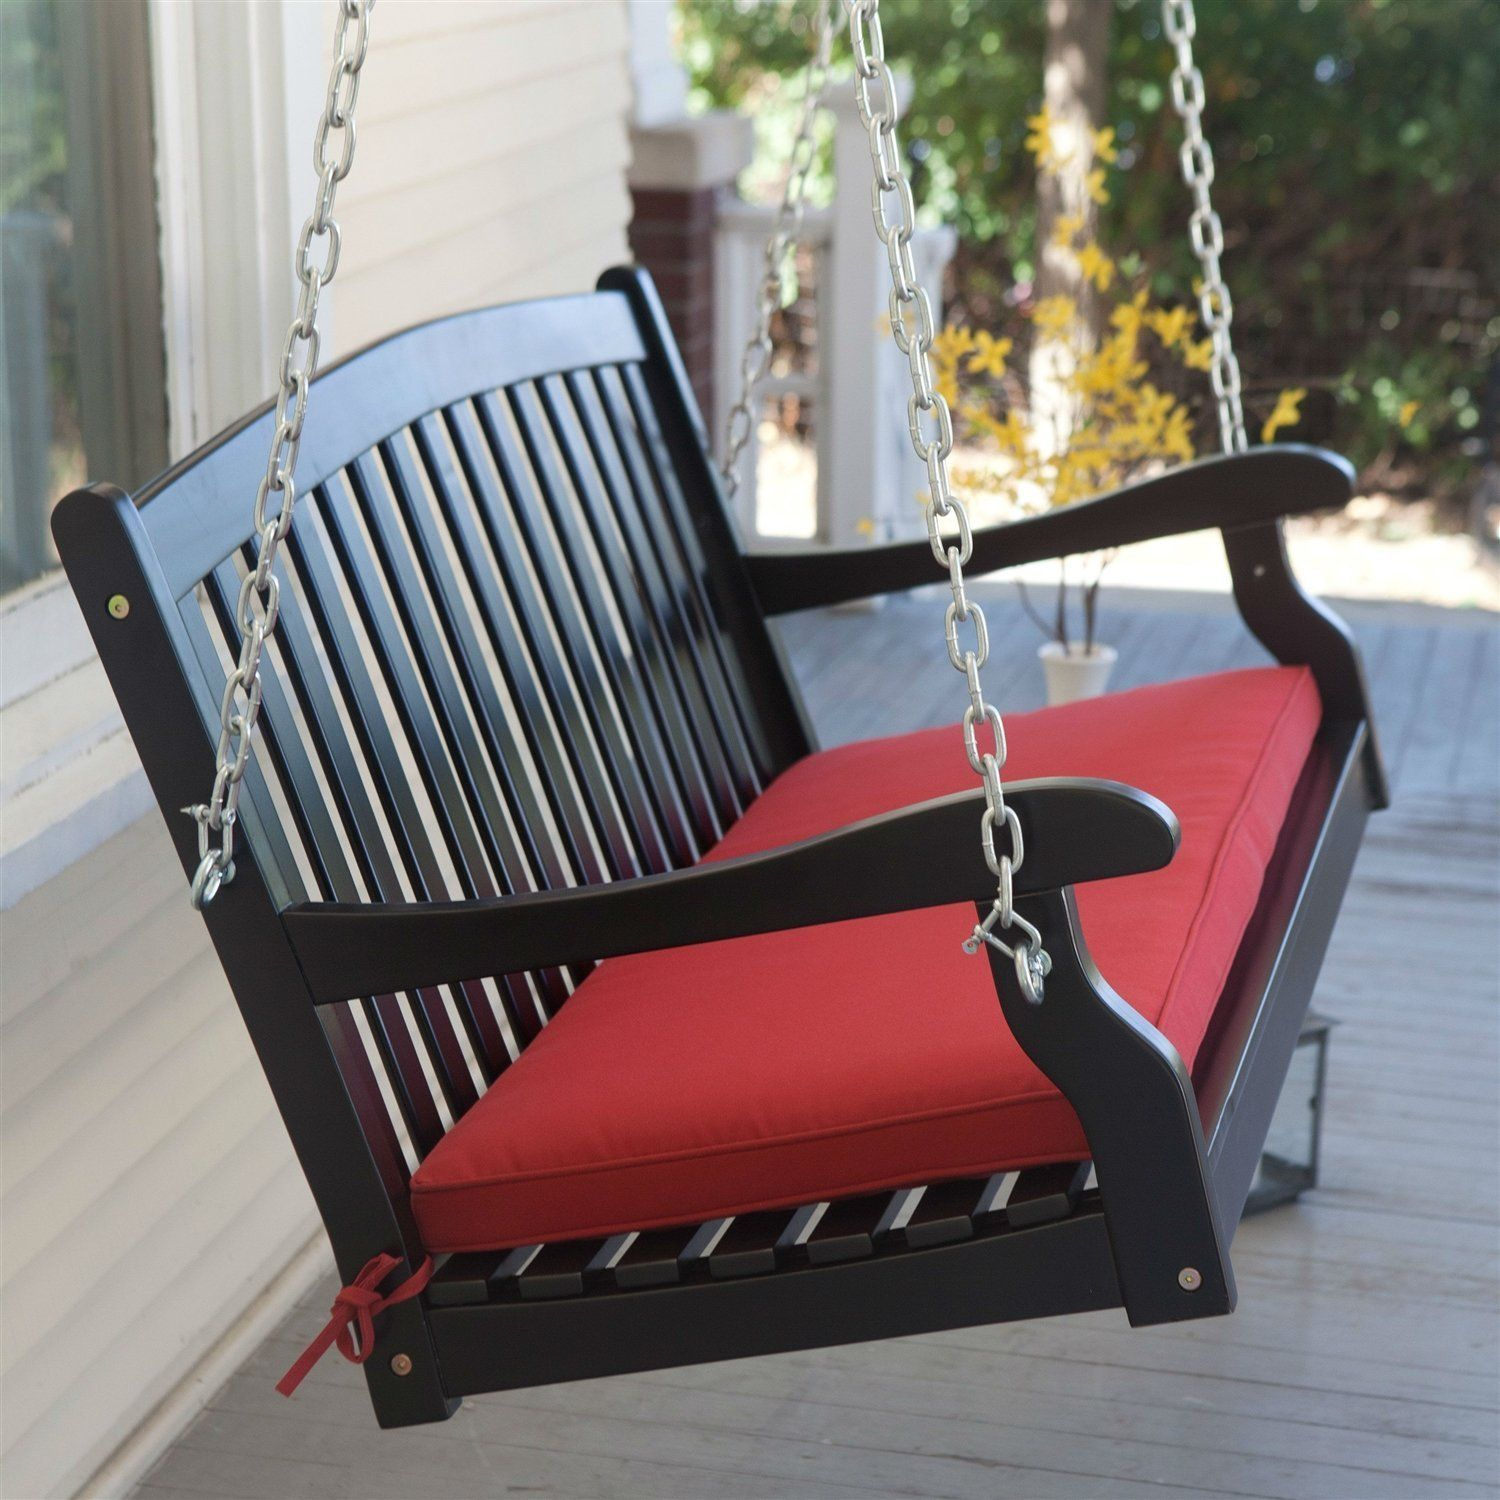 Black 5ft wooden porch swing with brick red cushion and